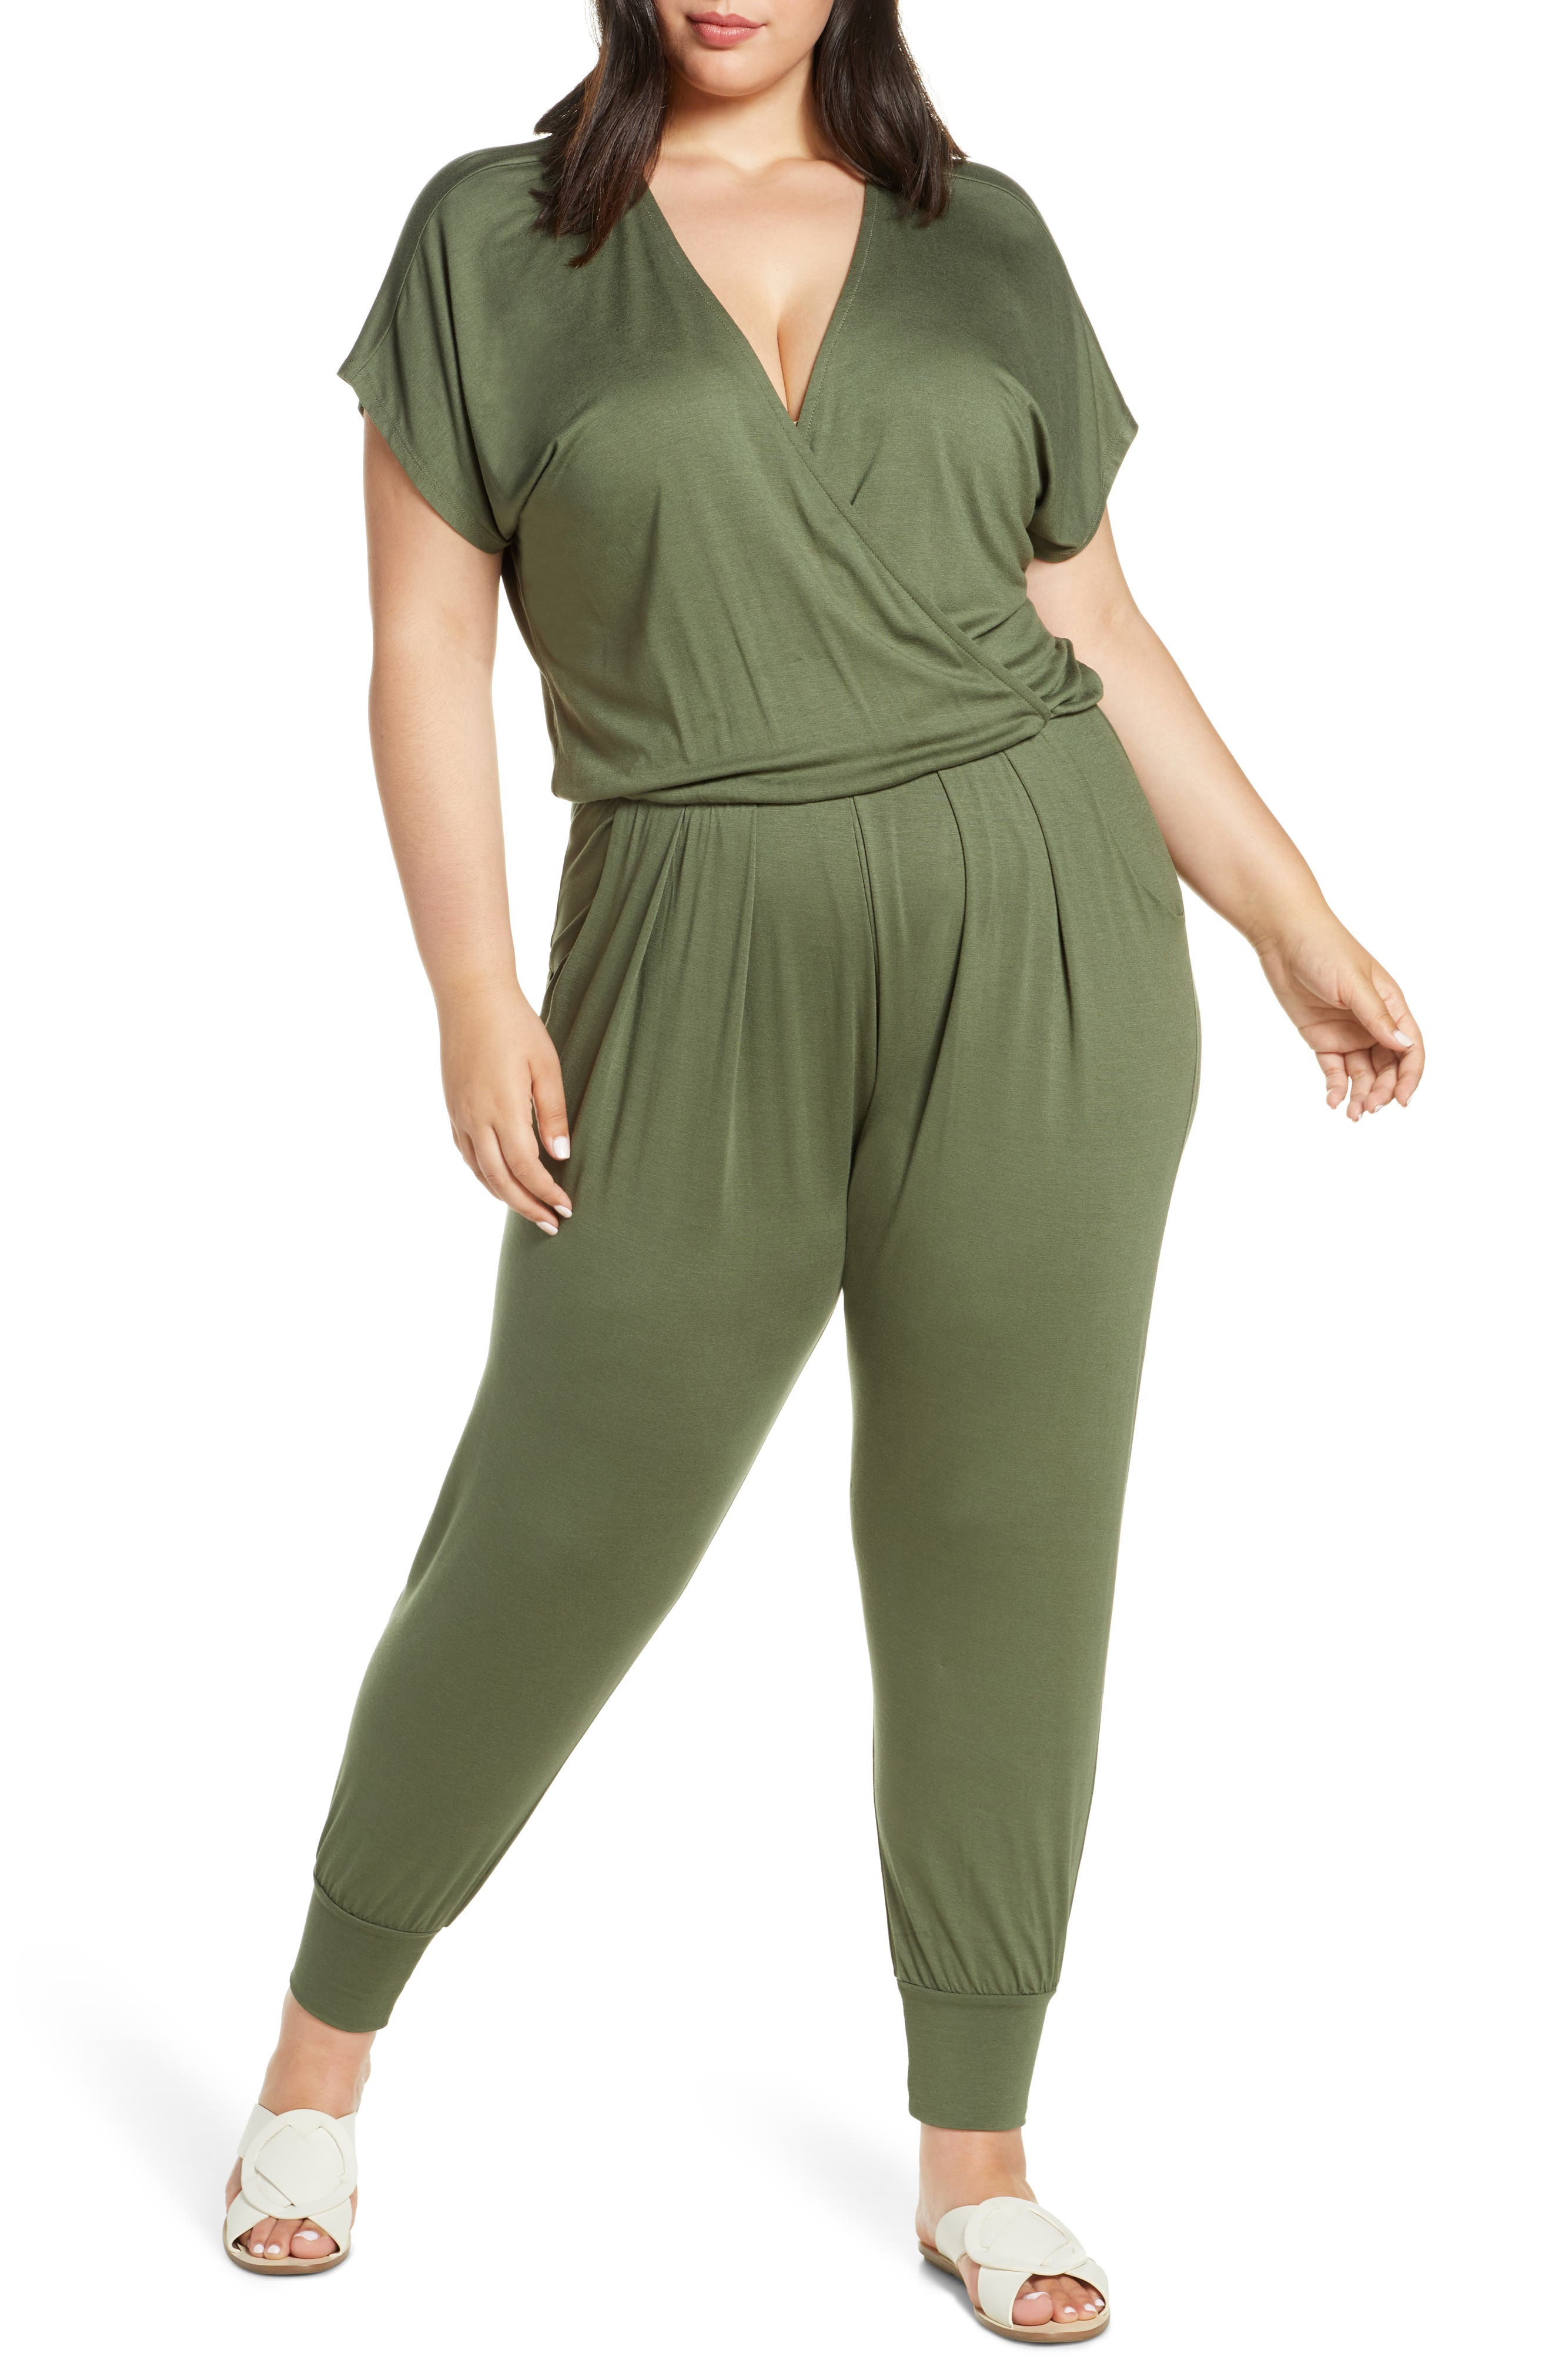 Cut from soft, supple jersey, this ready-for-anything jumpsuit features a deep surplice neckline and pleat-front pants that end in tapered, banded cuffs. Style Name: Loveappella Short Sleeve Wrap Top Jumpsuit (Plus Size). Style Number: 5614801. Available in stores.